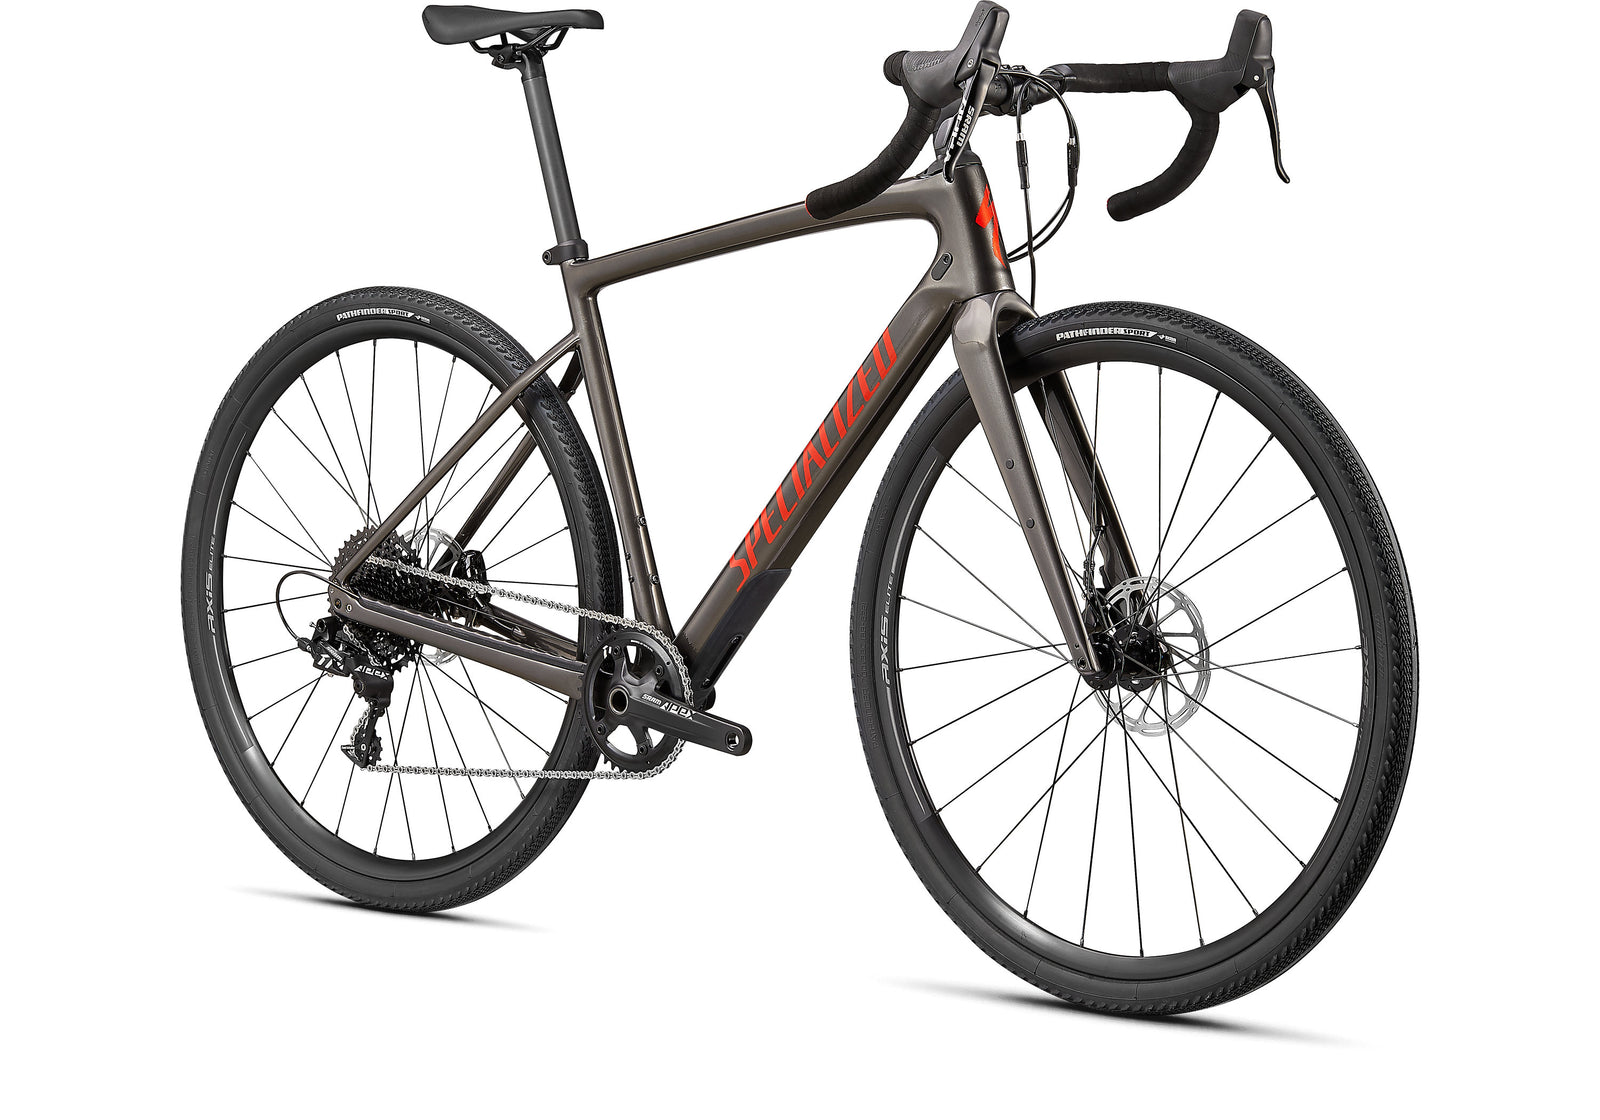 All-New Diverge Carbon